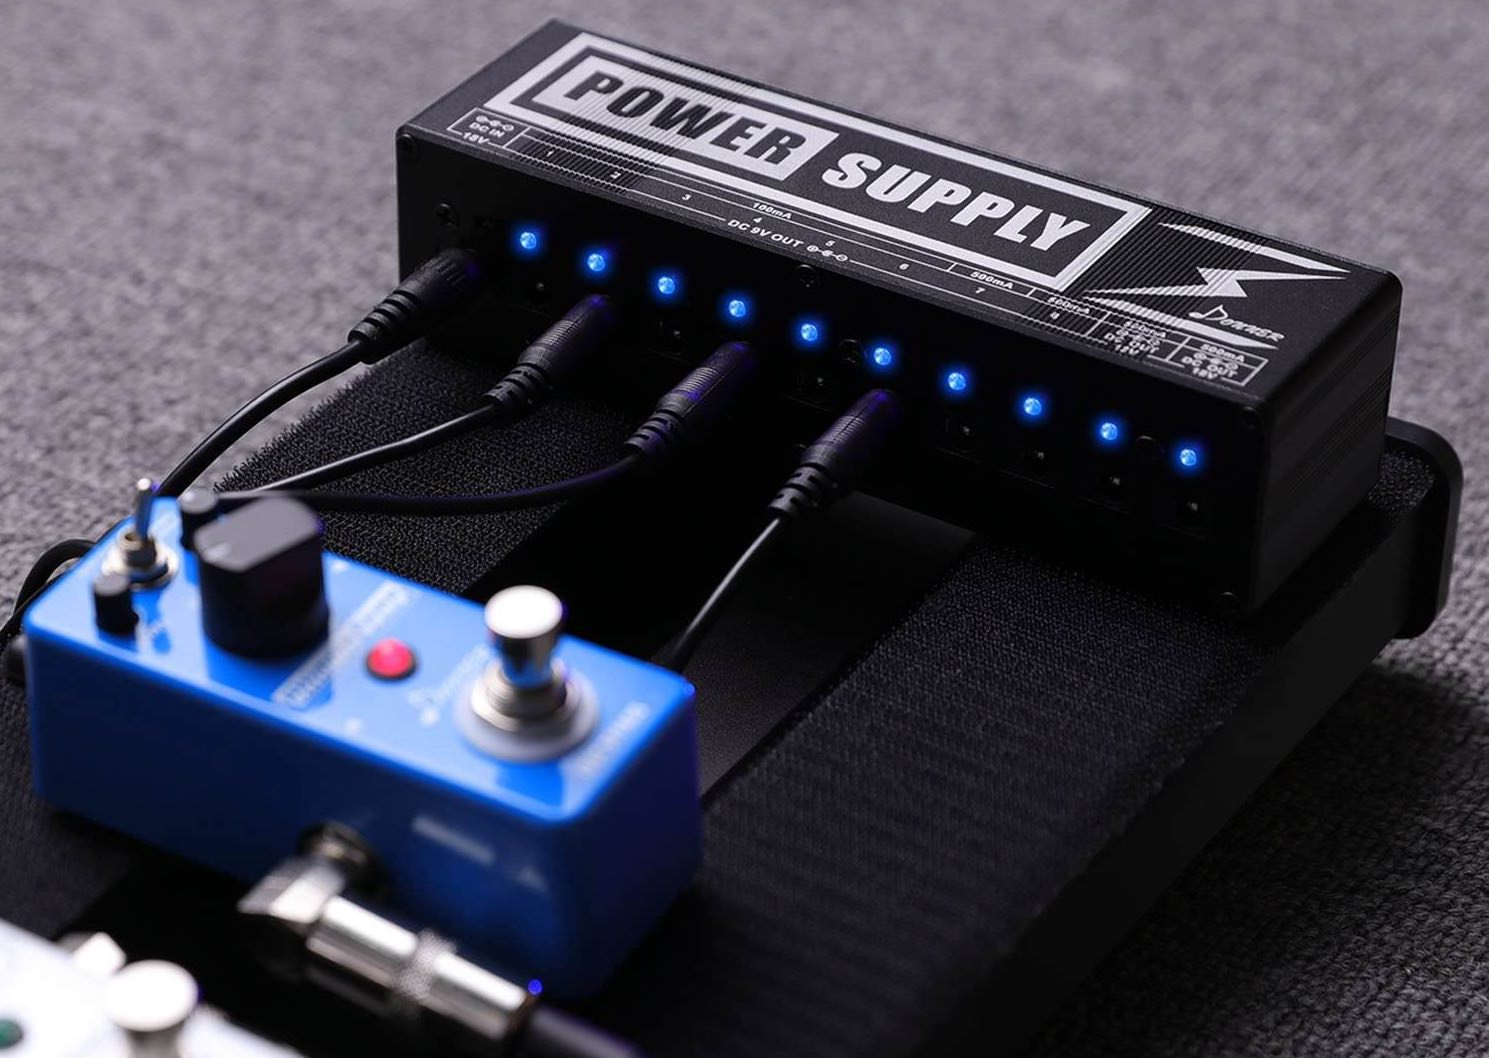 donner dp 2 guitar pedal power supply first look review greg kocis producer songwriter. Black Bedroom Furniture Sets. Home Design Ideas